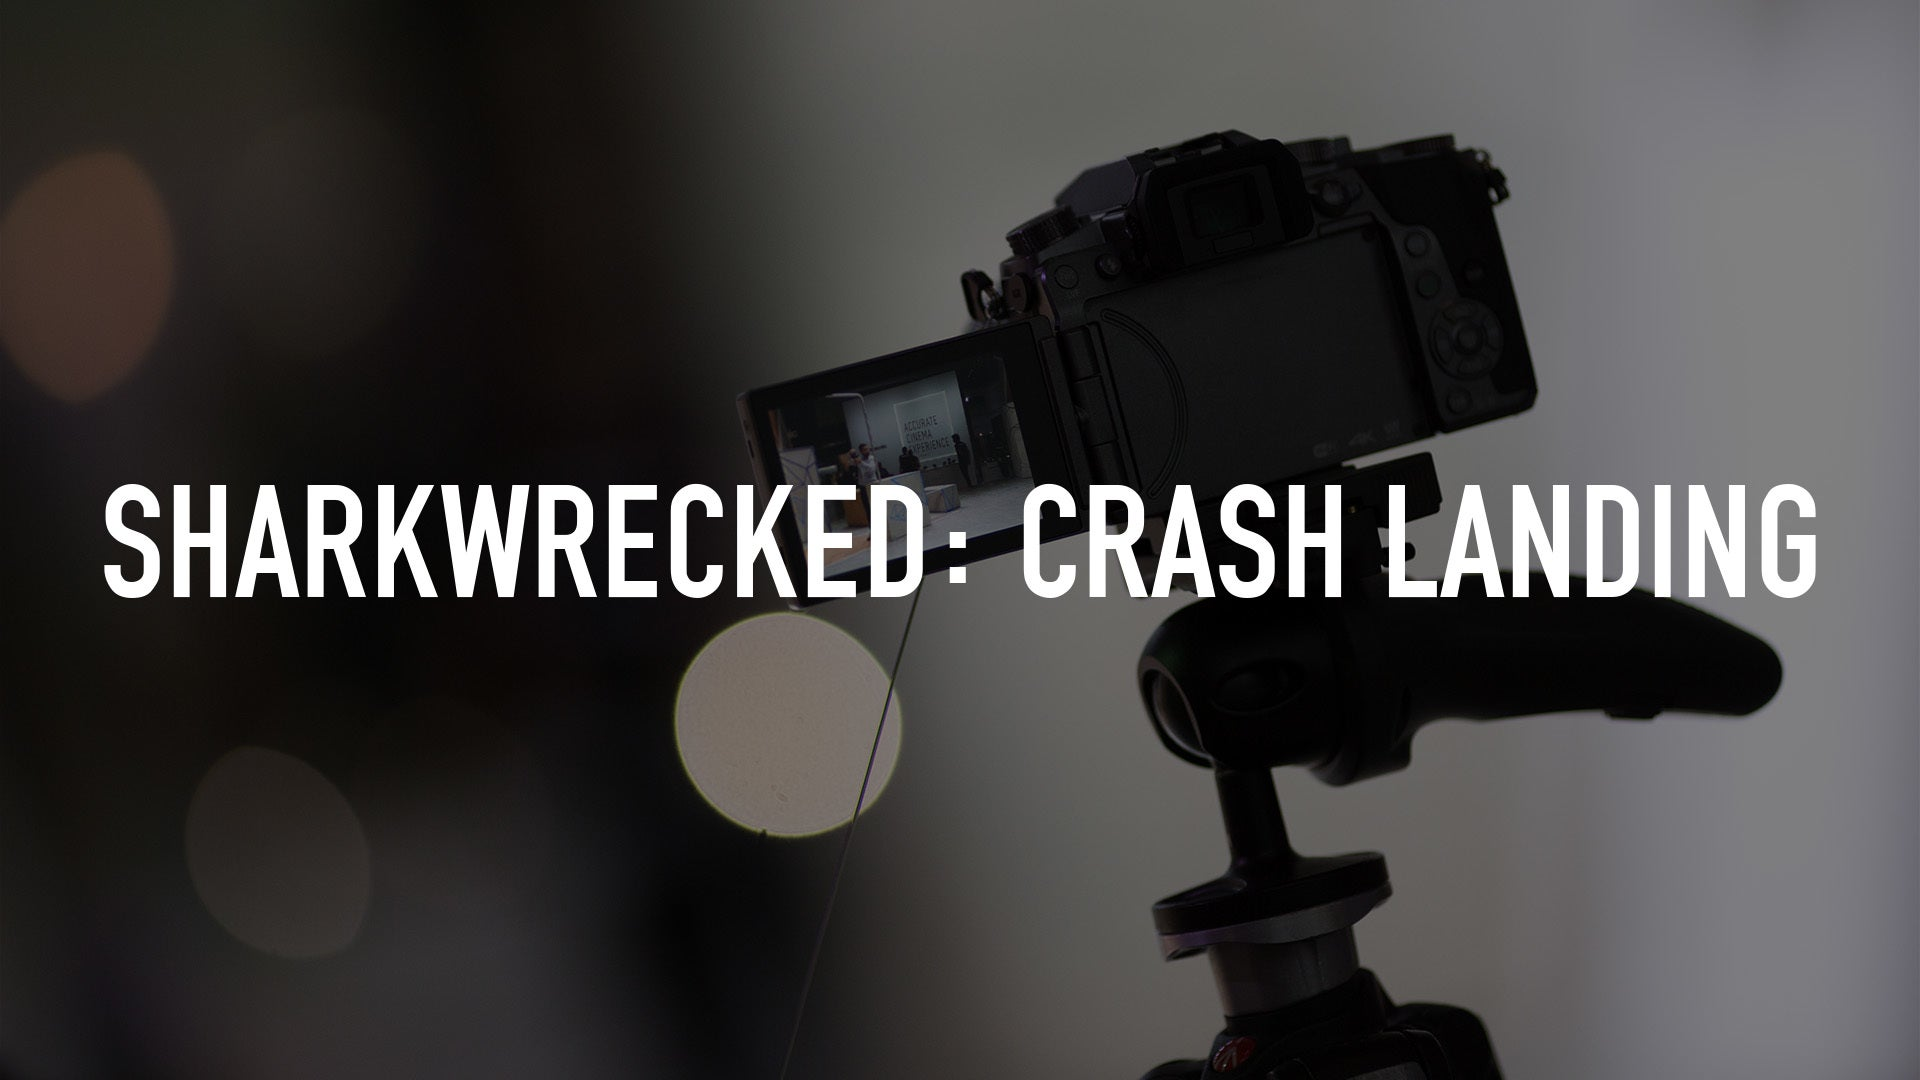 Sharkwrecked: Crash Landing